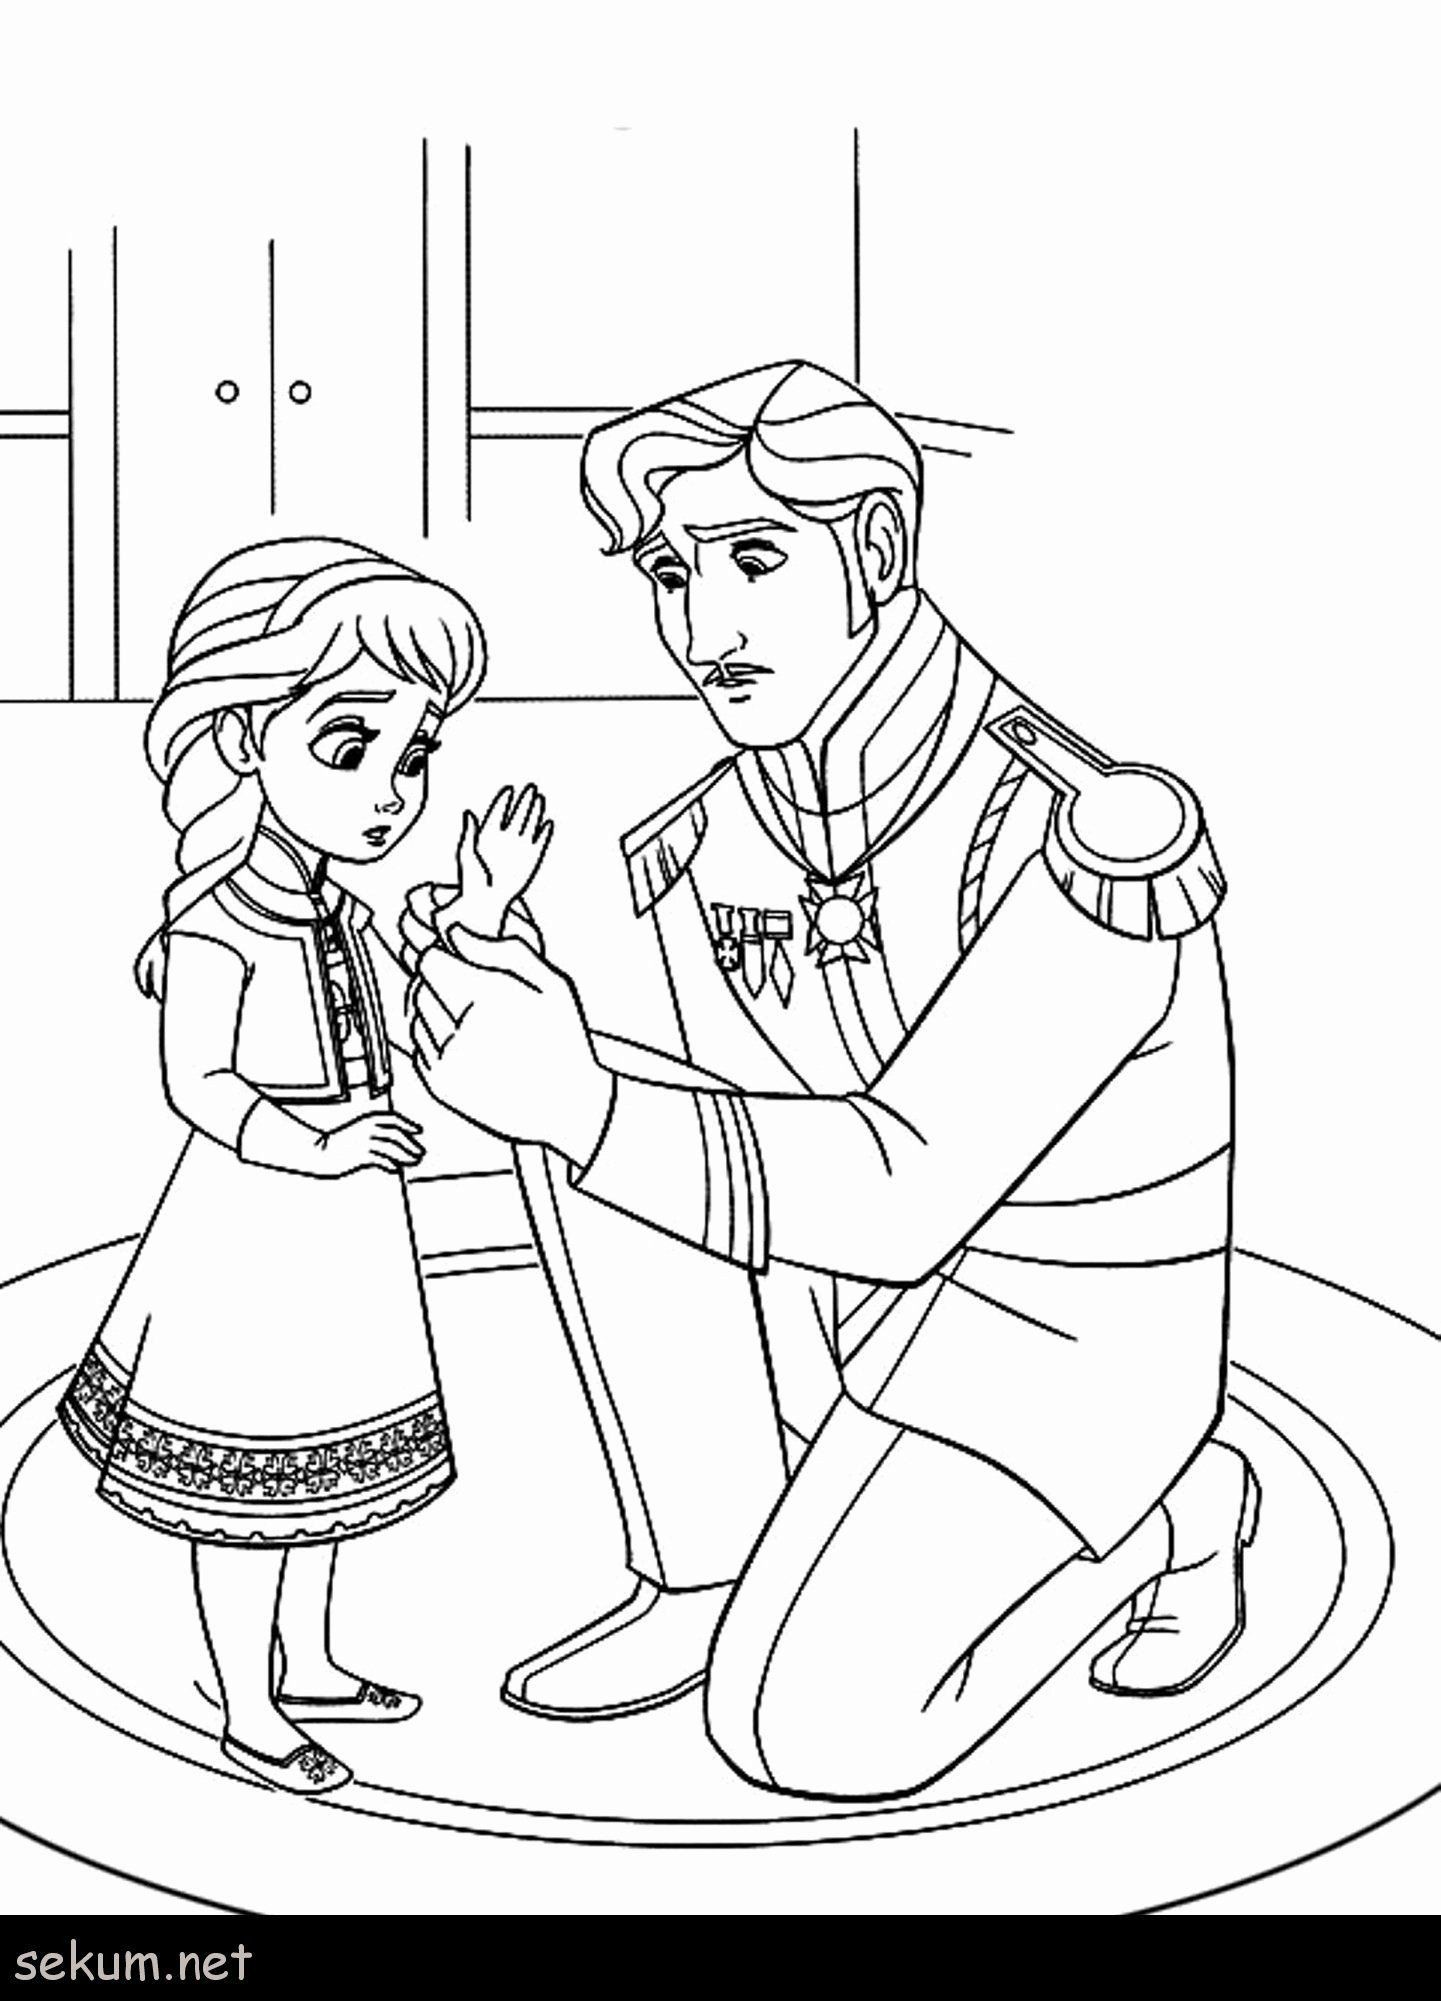 Coloring Book Pages Frozen A 25 Frozen Coloring Pages Printable Pdf In 2020 Elsa Coloring Pages Princess Coloring Pages Disney Princess Coloring Pages